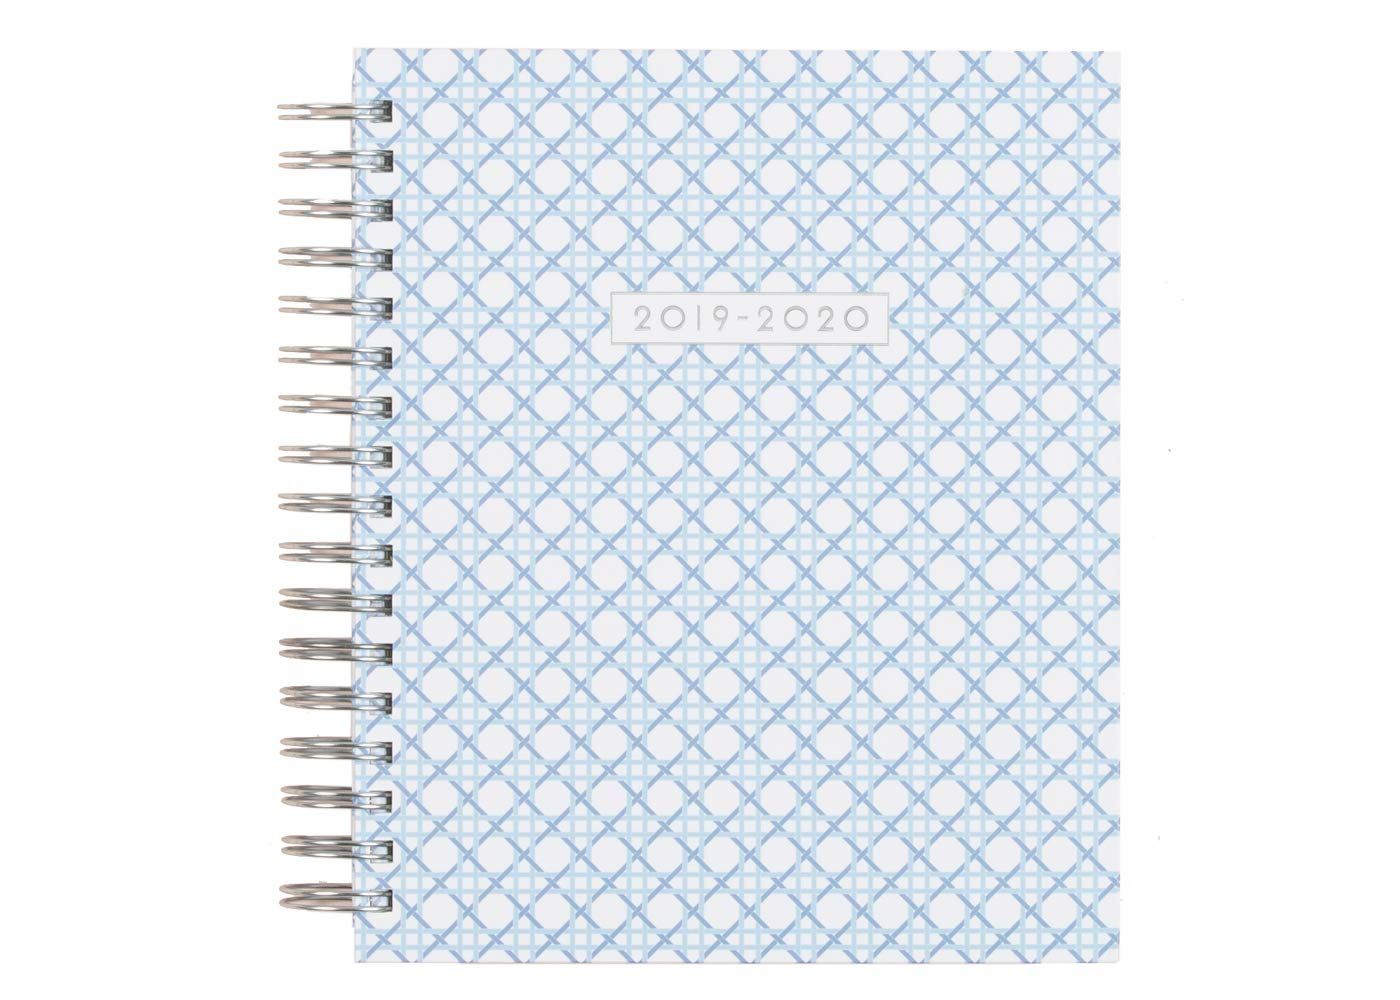 Dabney Lee for Blue Sky 2019-2020 Academic Year Daily & Monthly Planner, Hardcover, Silver-Tone Twin-Wire Binding, 7'' x 9'', Cane by Blue Sky